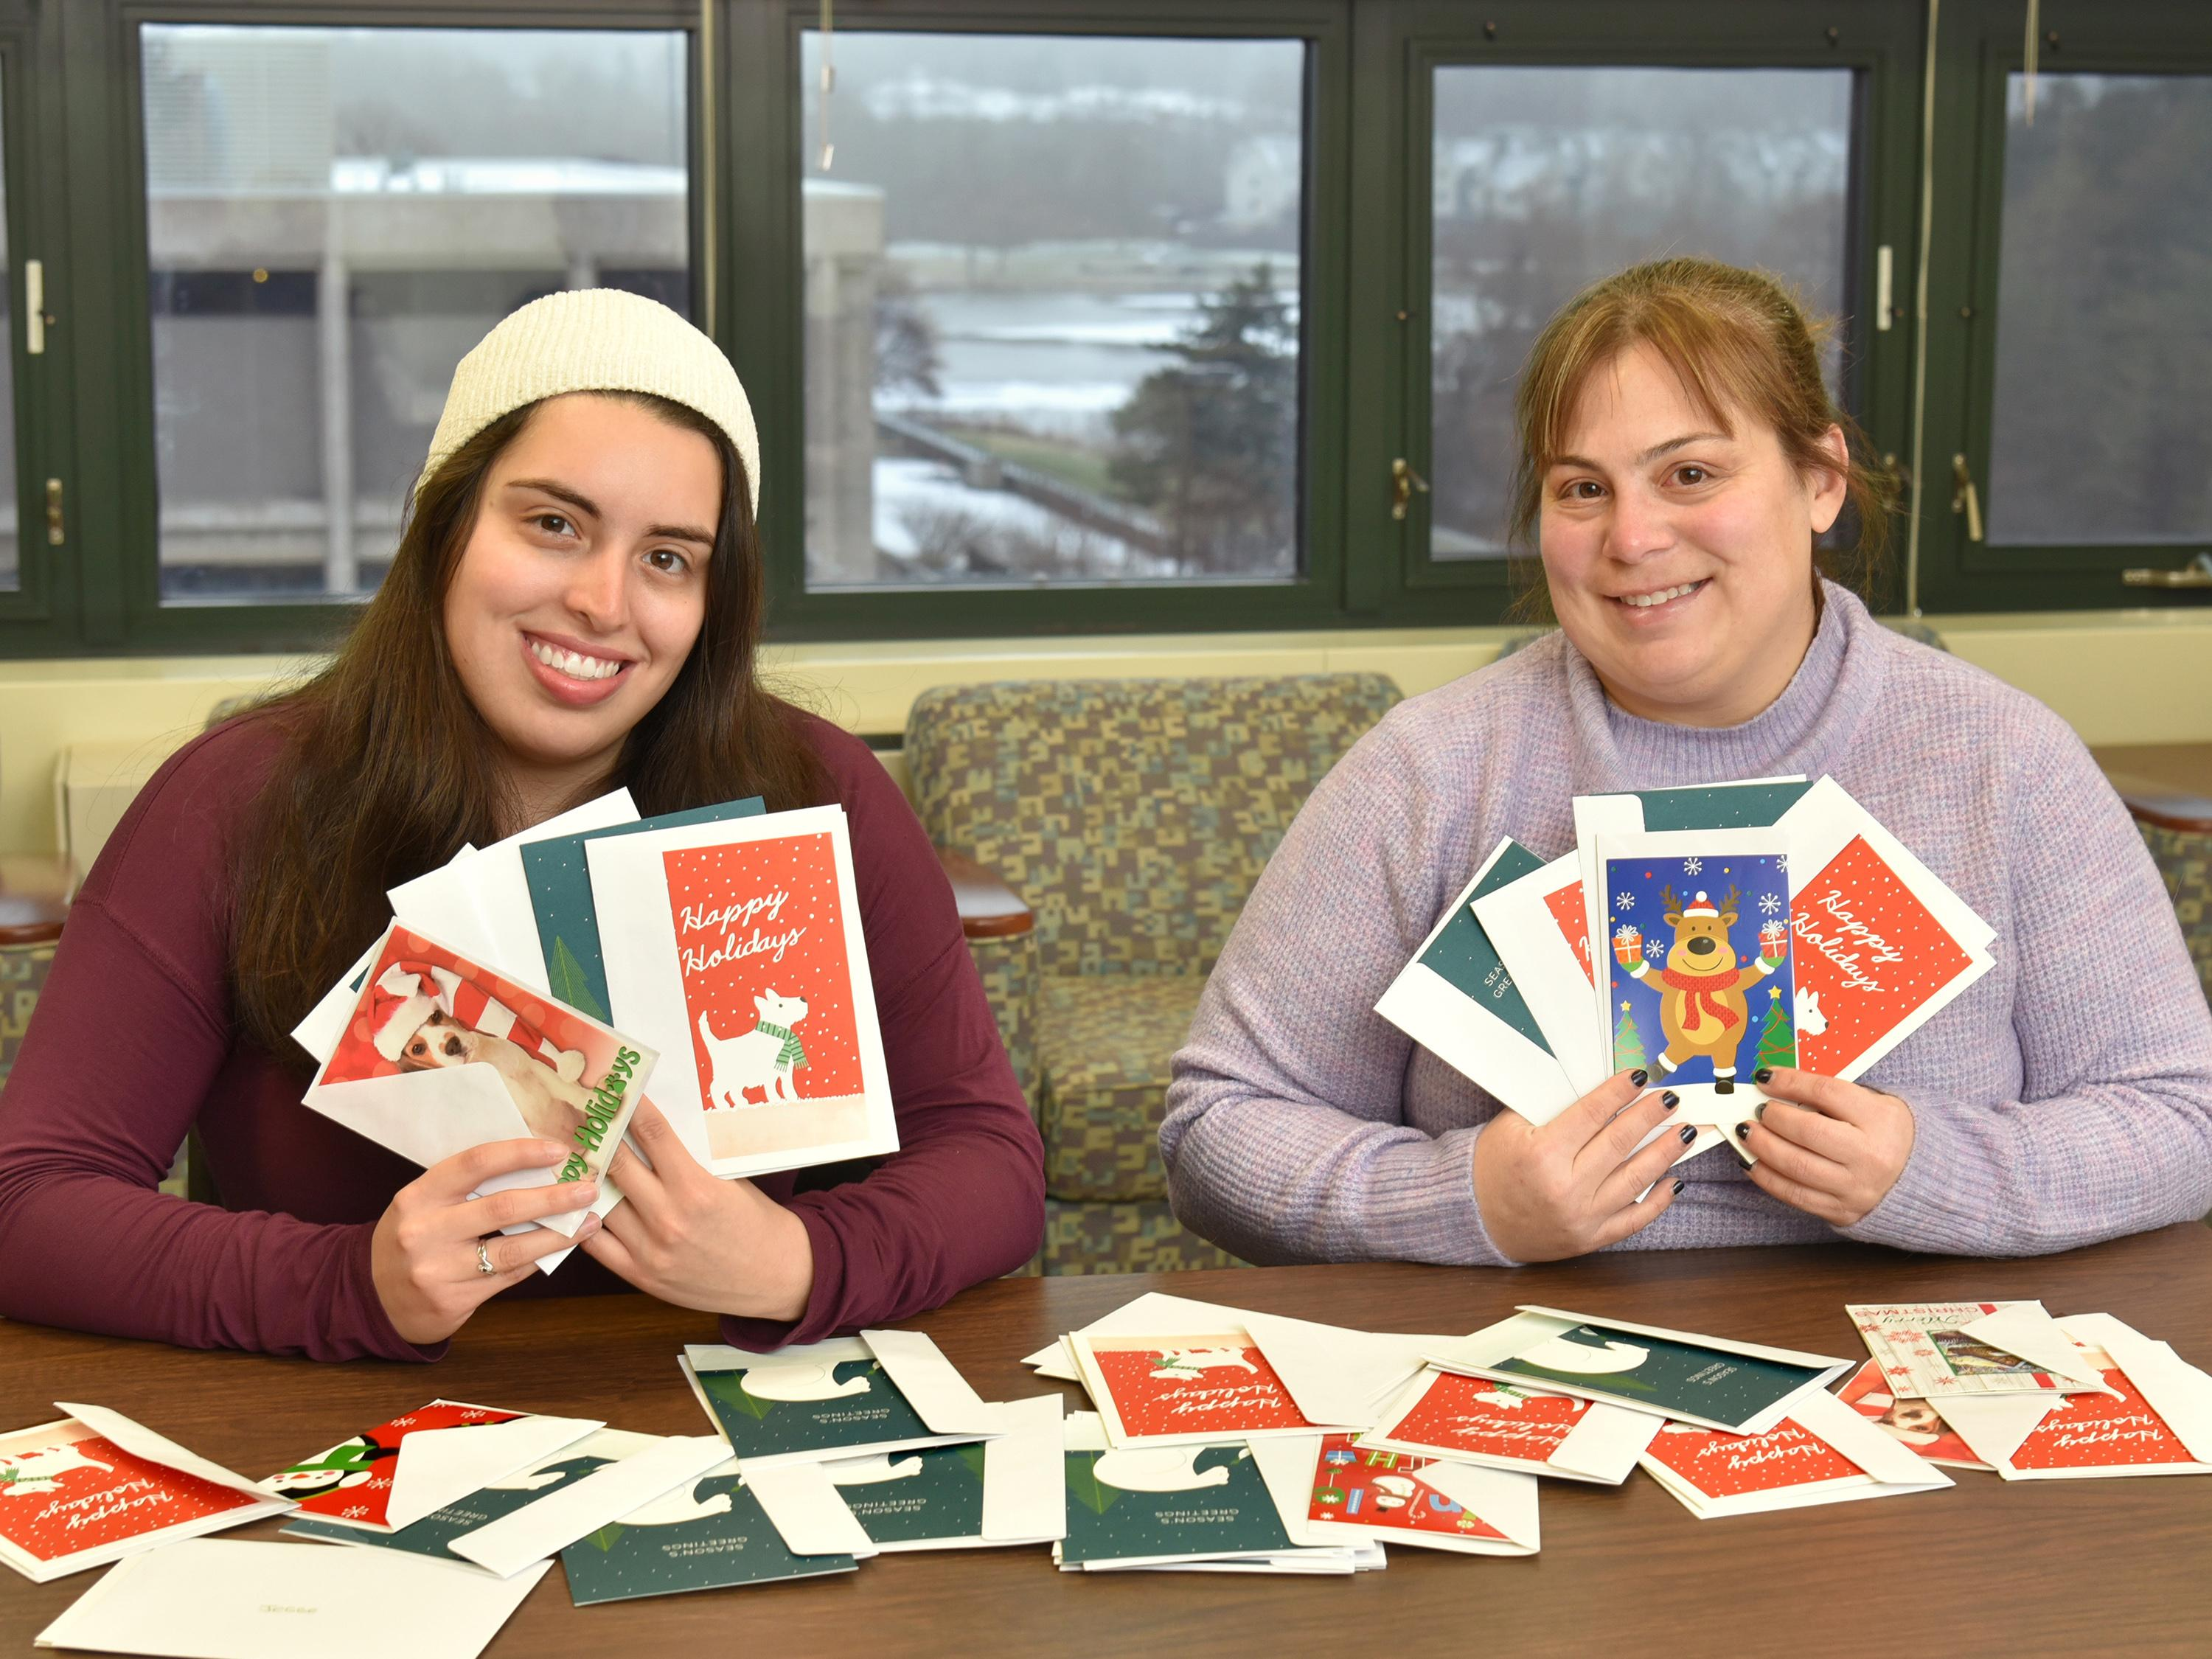 Sarah Gamarra and Jaclyn Schildkraut showing some of the donated holiday cards